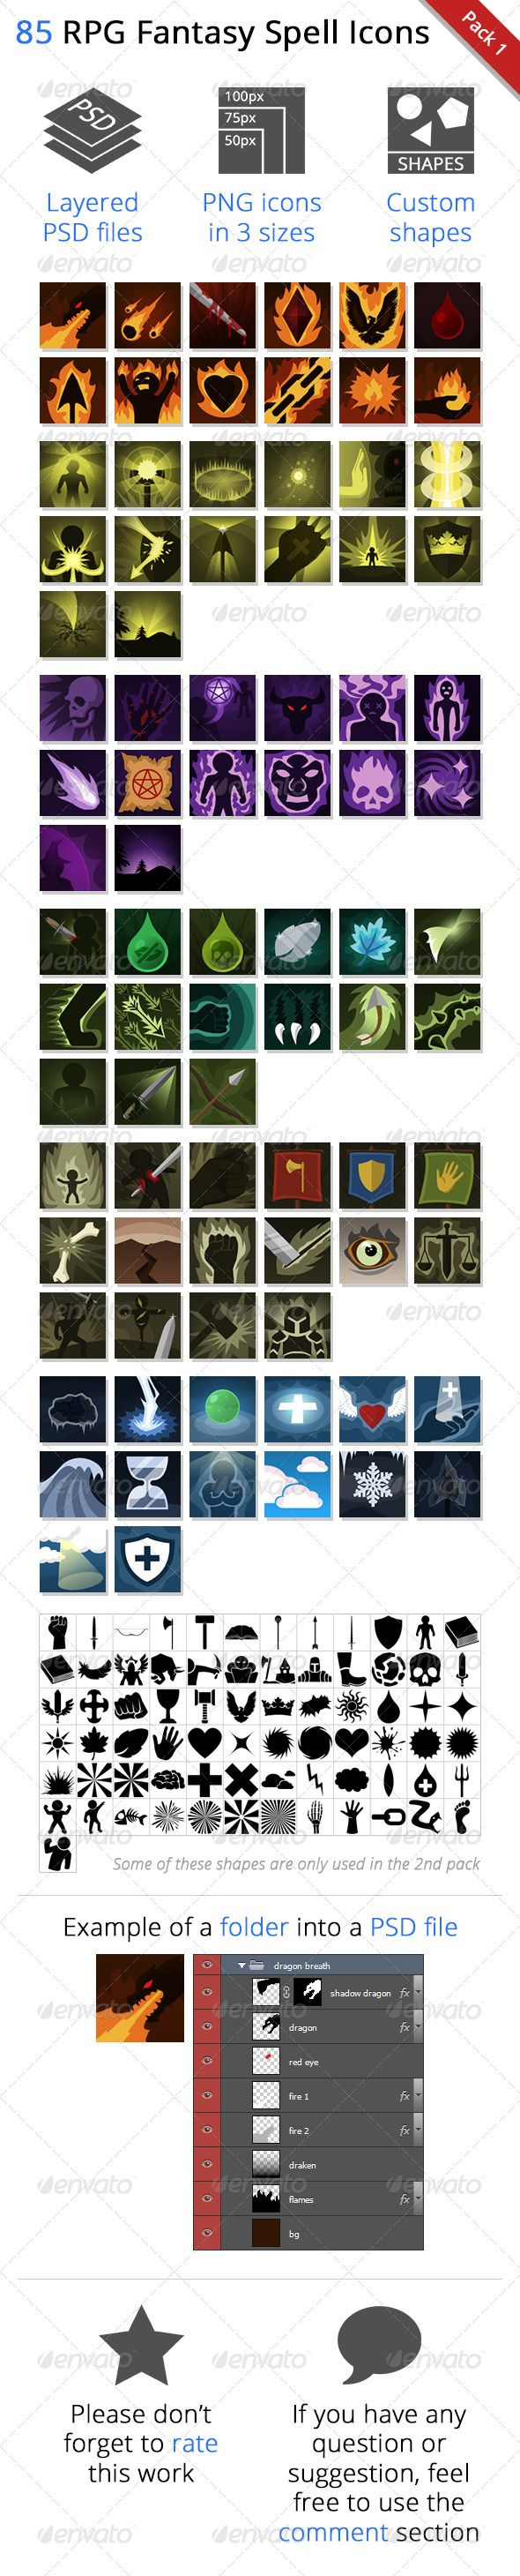 "85 RPG Fantasy Spells Icons #GraphicRiver Pack 2 ""72 Fantasy Spells Icons"" If you like this content, you may also be interested… UPDATES 20 March 2014 I am currently working on the pack 3. Expected release: ? (currently 21 icons done). 7 Aug. 2013 Some red icons have been smoothed The content of the custom shape has been improved significantly A second pack of icons has been released WHAT IS THIS ITEM? This item is a set of 85 icons representing magical and physical spells and skills cast…"